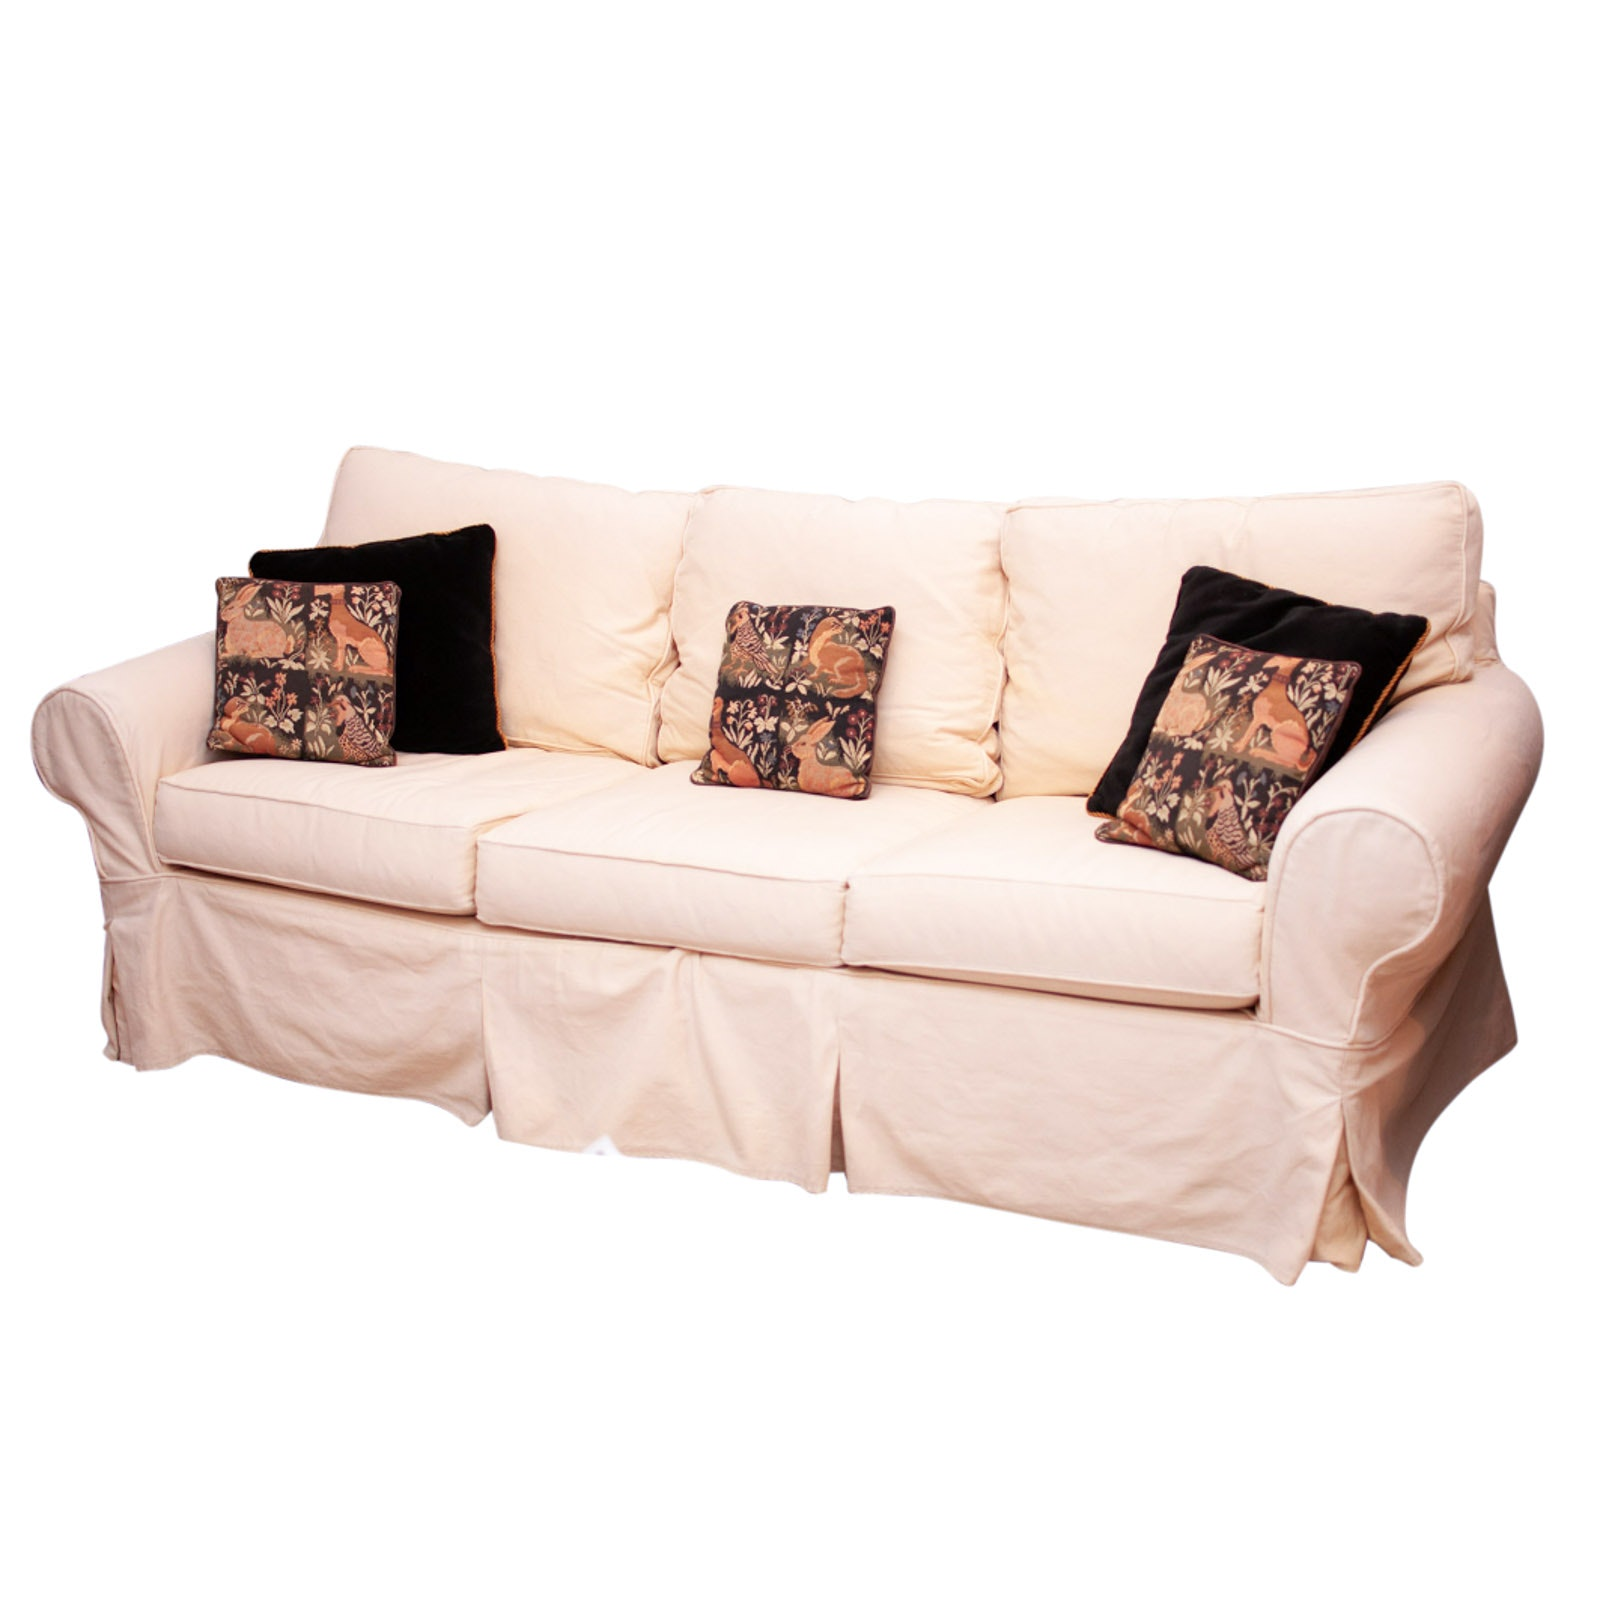 Contemporary Pottery Barn Sofa With Decorative Pillows ...